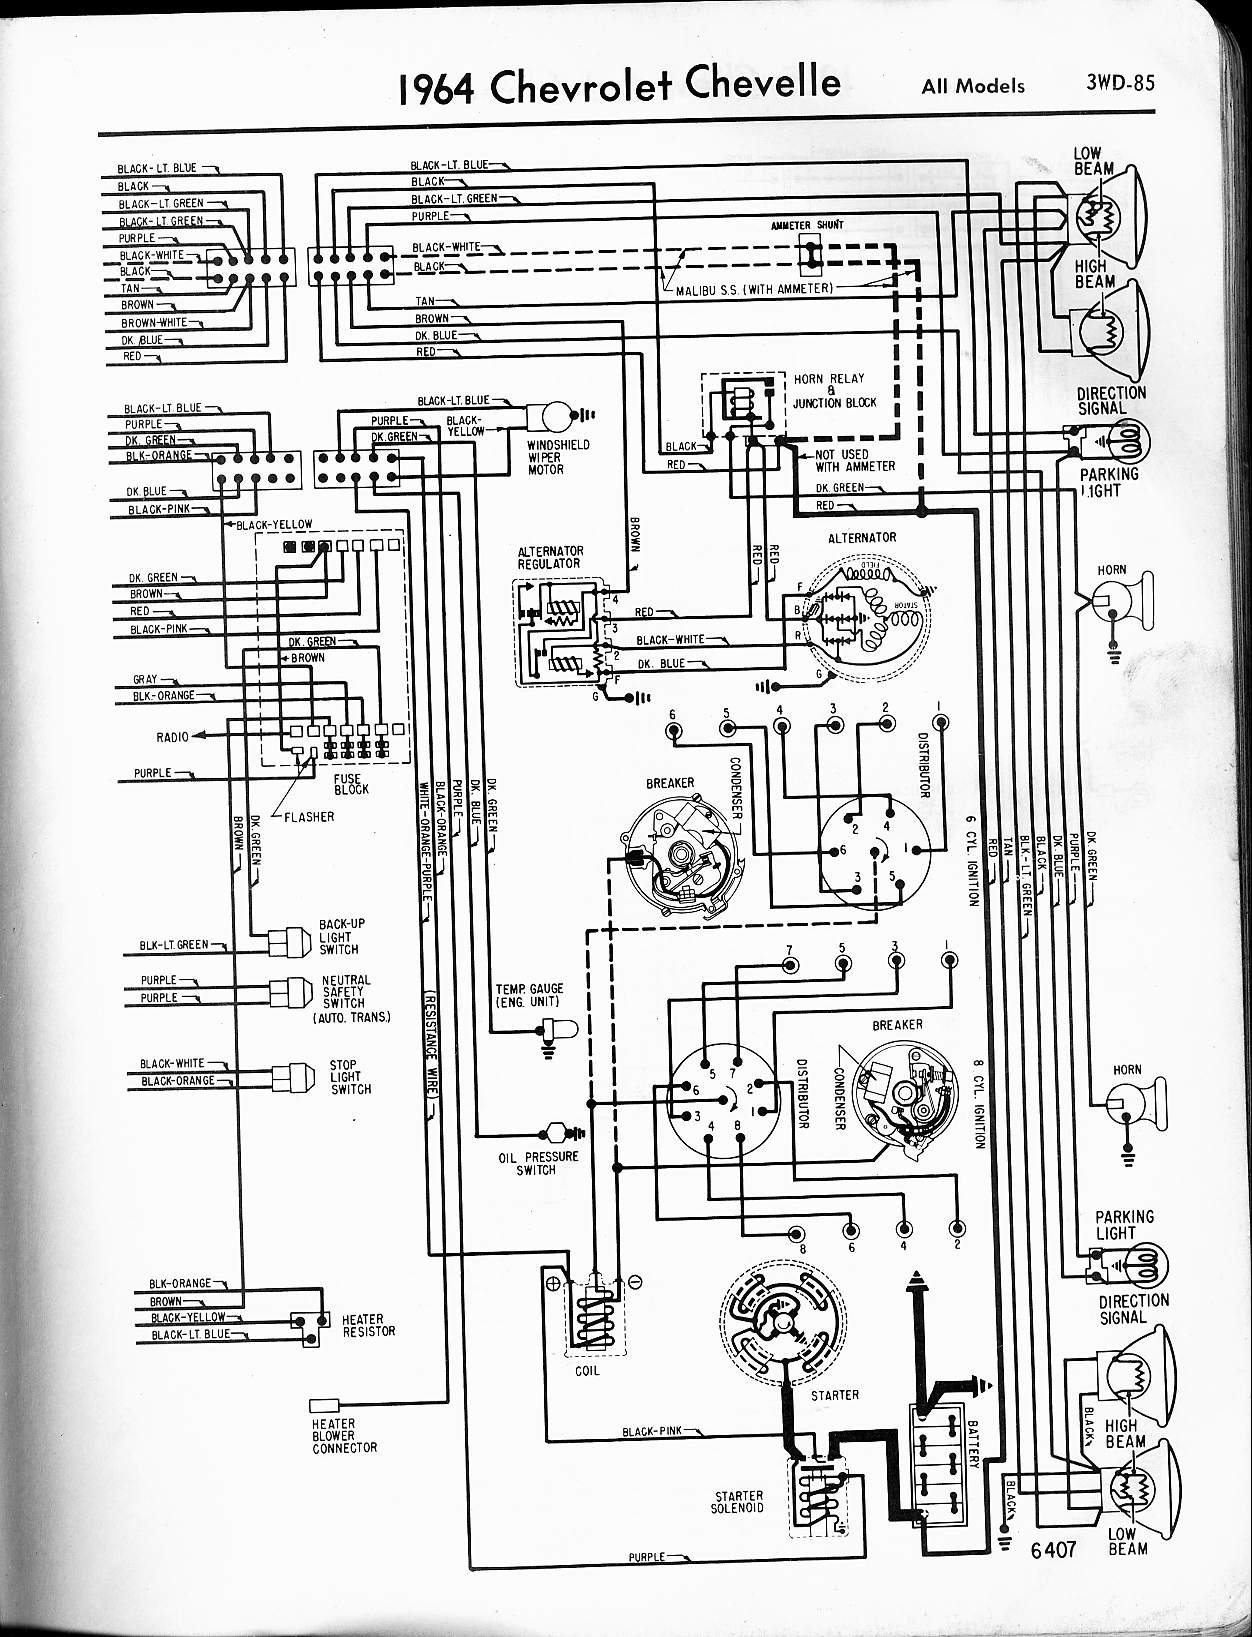 MWireChev64_3WD 085 chevy diagrams 1985 Chevy Truck Wiring Harness at fashall.co